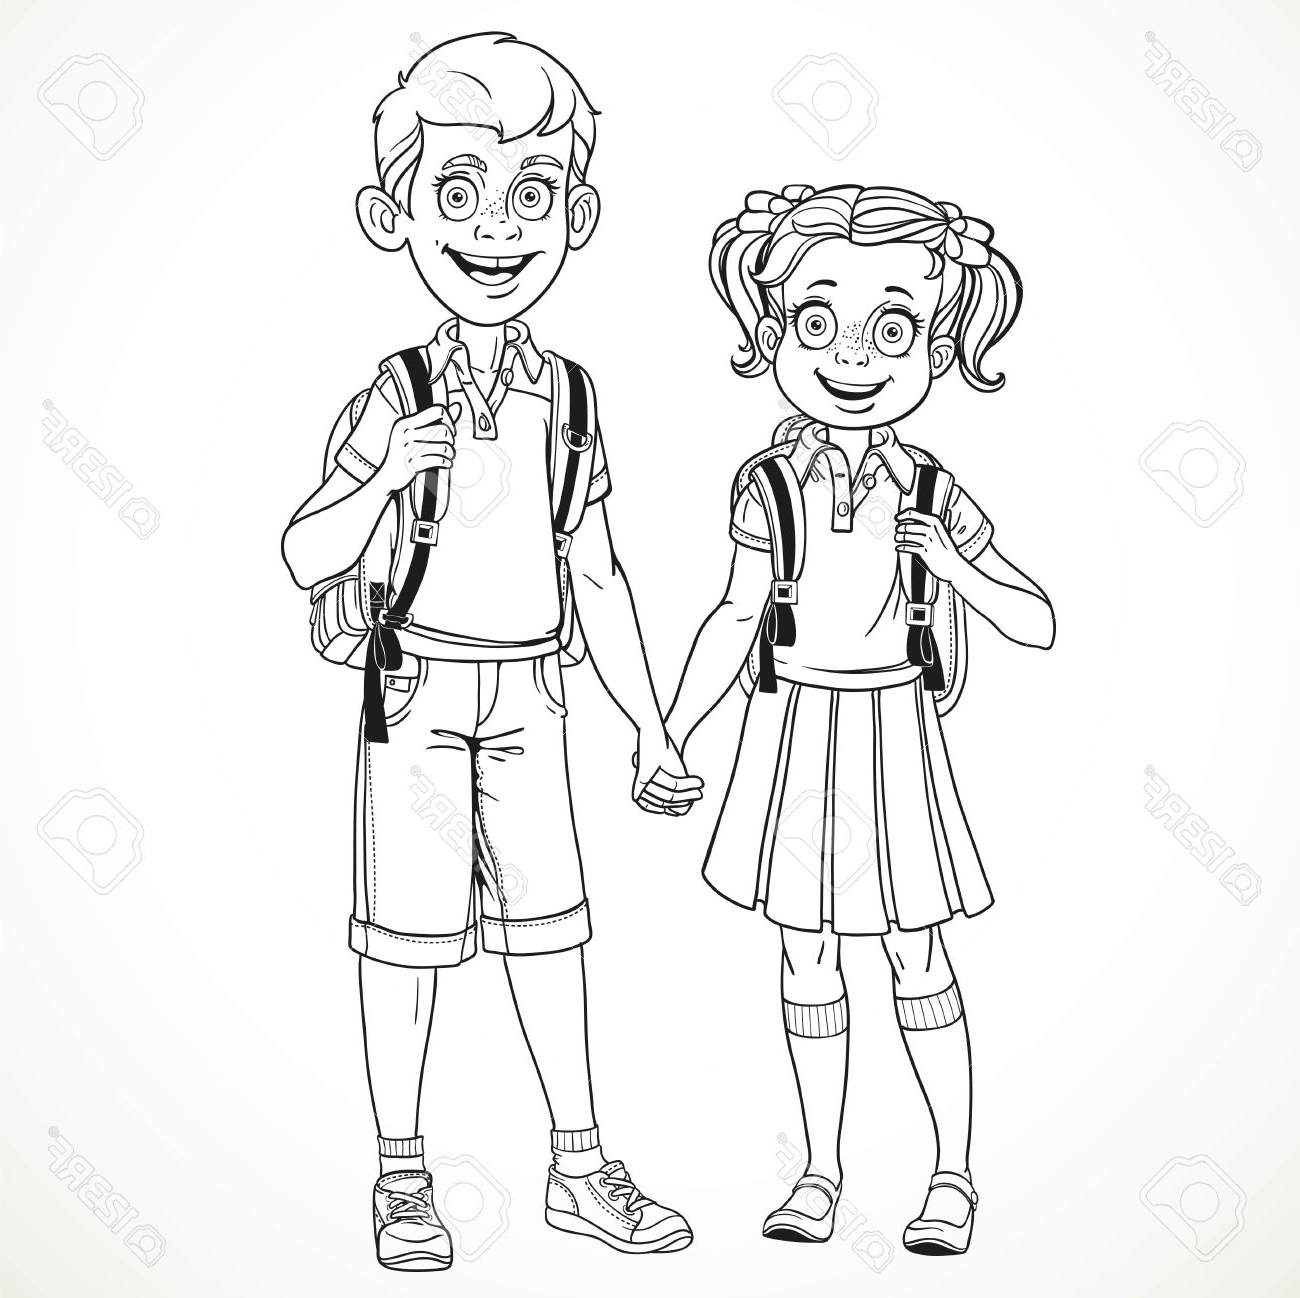 1300x1298 Boy And Girl Holding Hands Drawing Sketches Of Girl With Boy